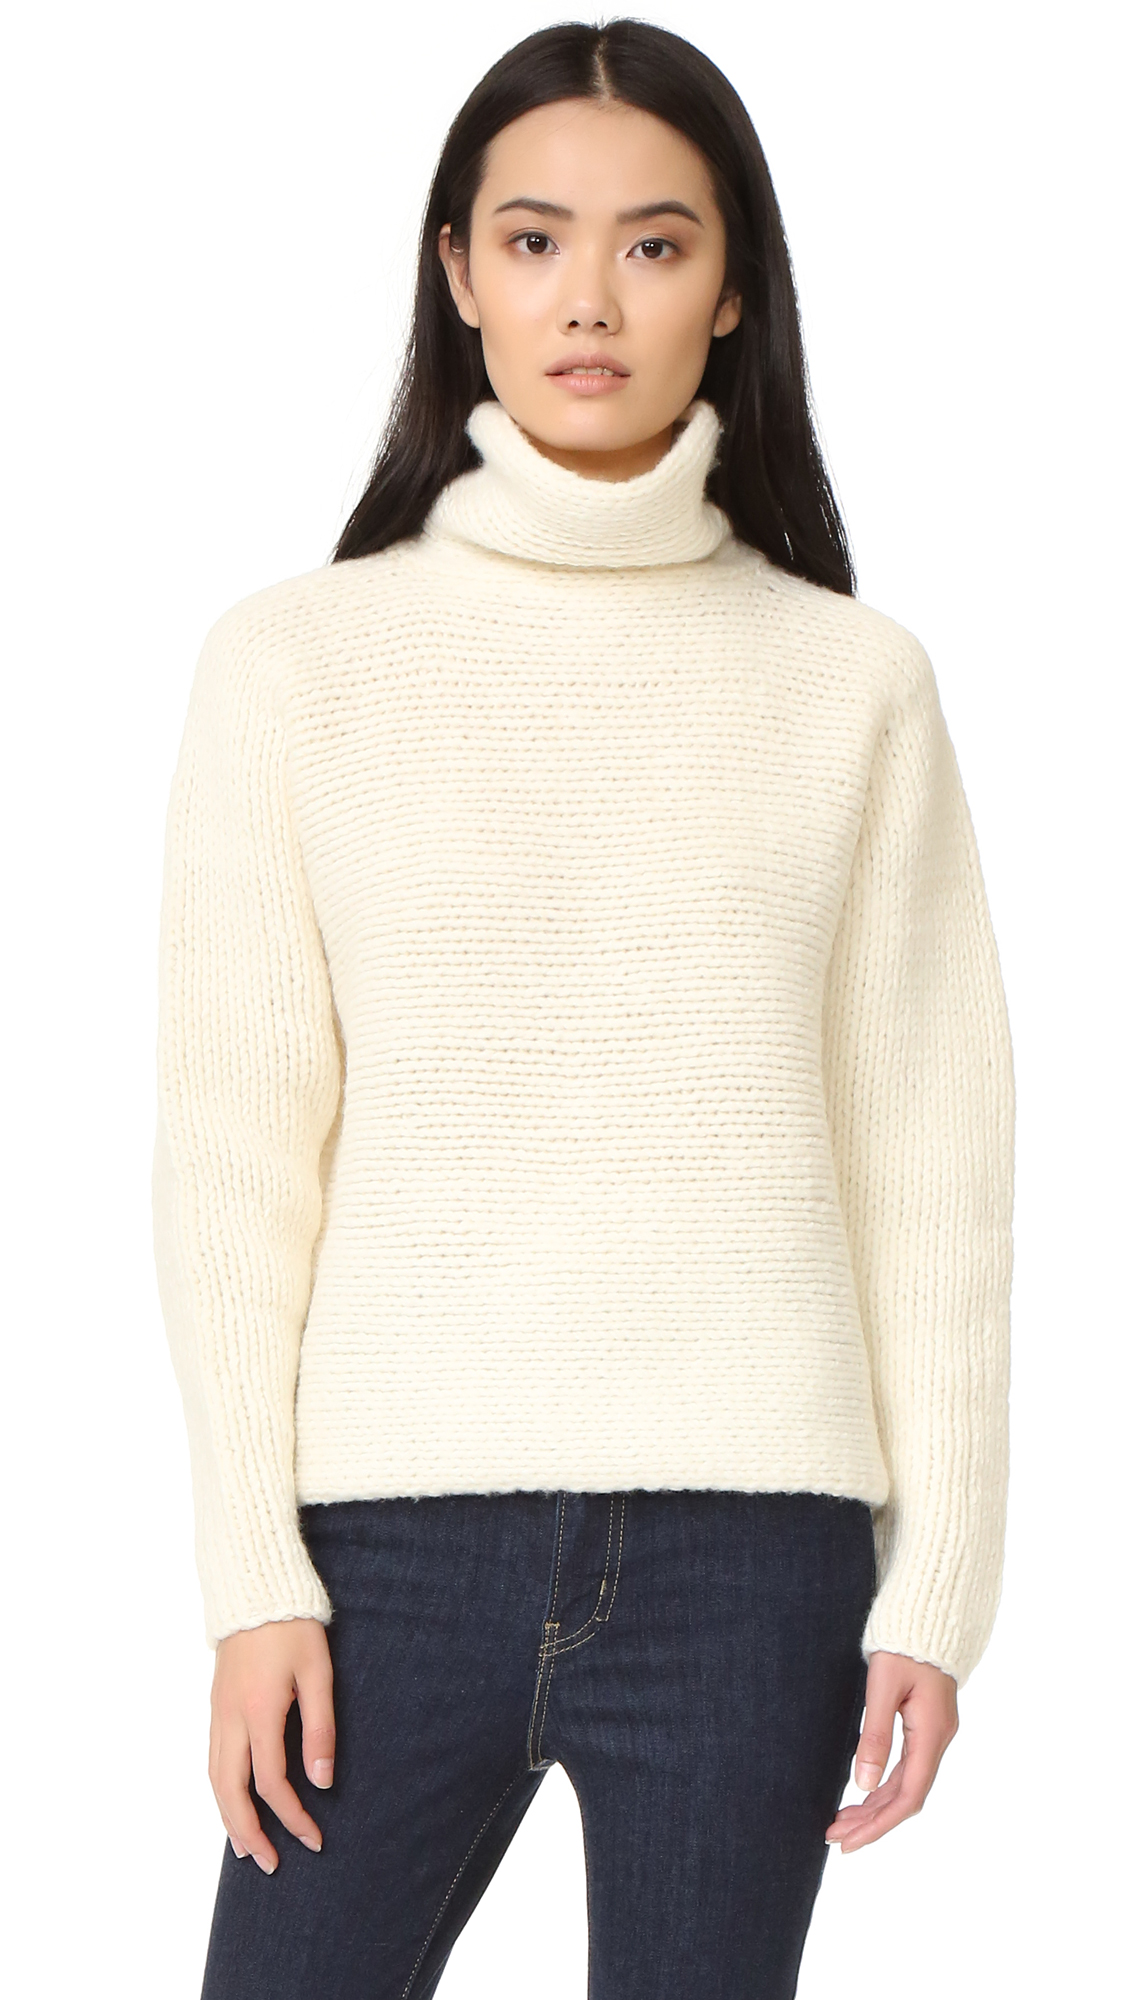 Chunky stitches lend soft texture to this cozy A.L.C. turtleneck sweater. Long dolman sleeves. Fabric: Chunky knit. 100% wool. Dry clean. Imported, China. Yarn from Italy. Measurements Length: 22.75in / 58cm, from shoulder Measurements from size